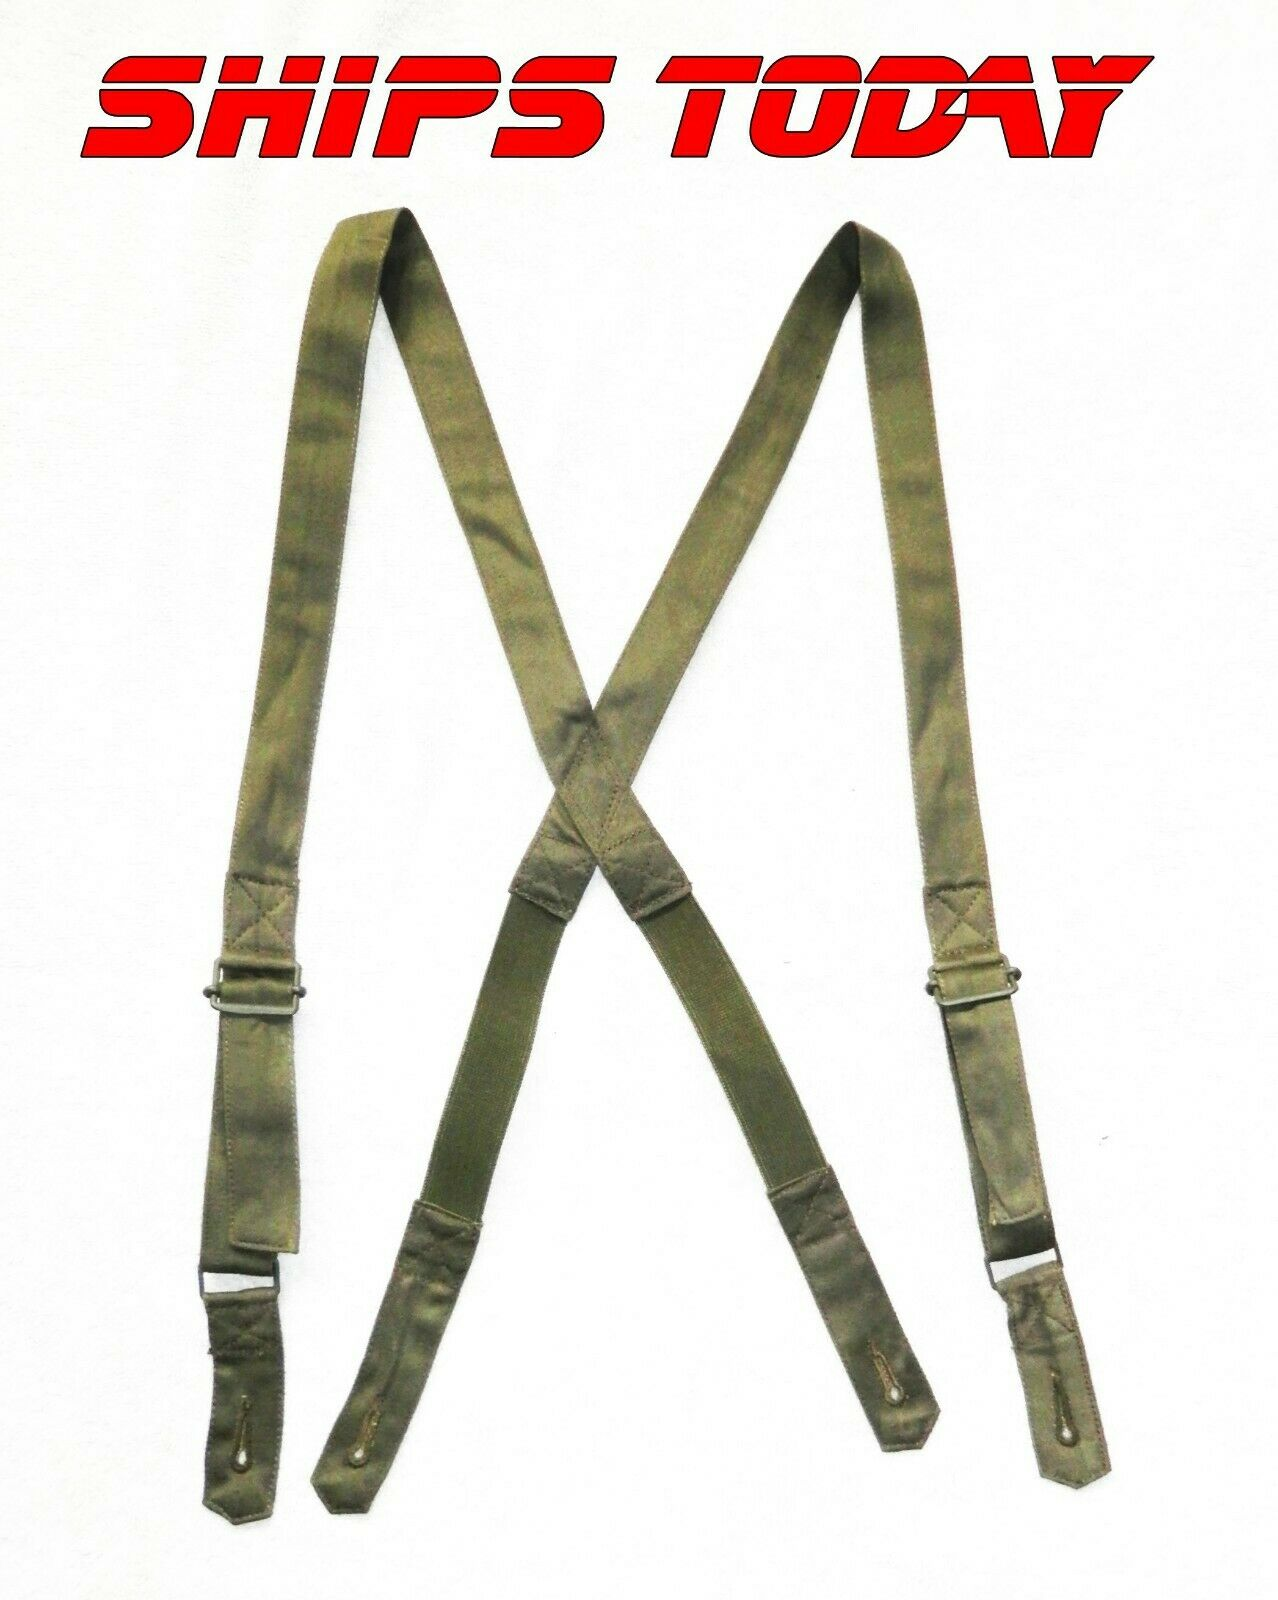 New French Military Issue Suspenders 4 Button Elastic Braces Reenactment ECWCS